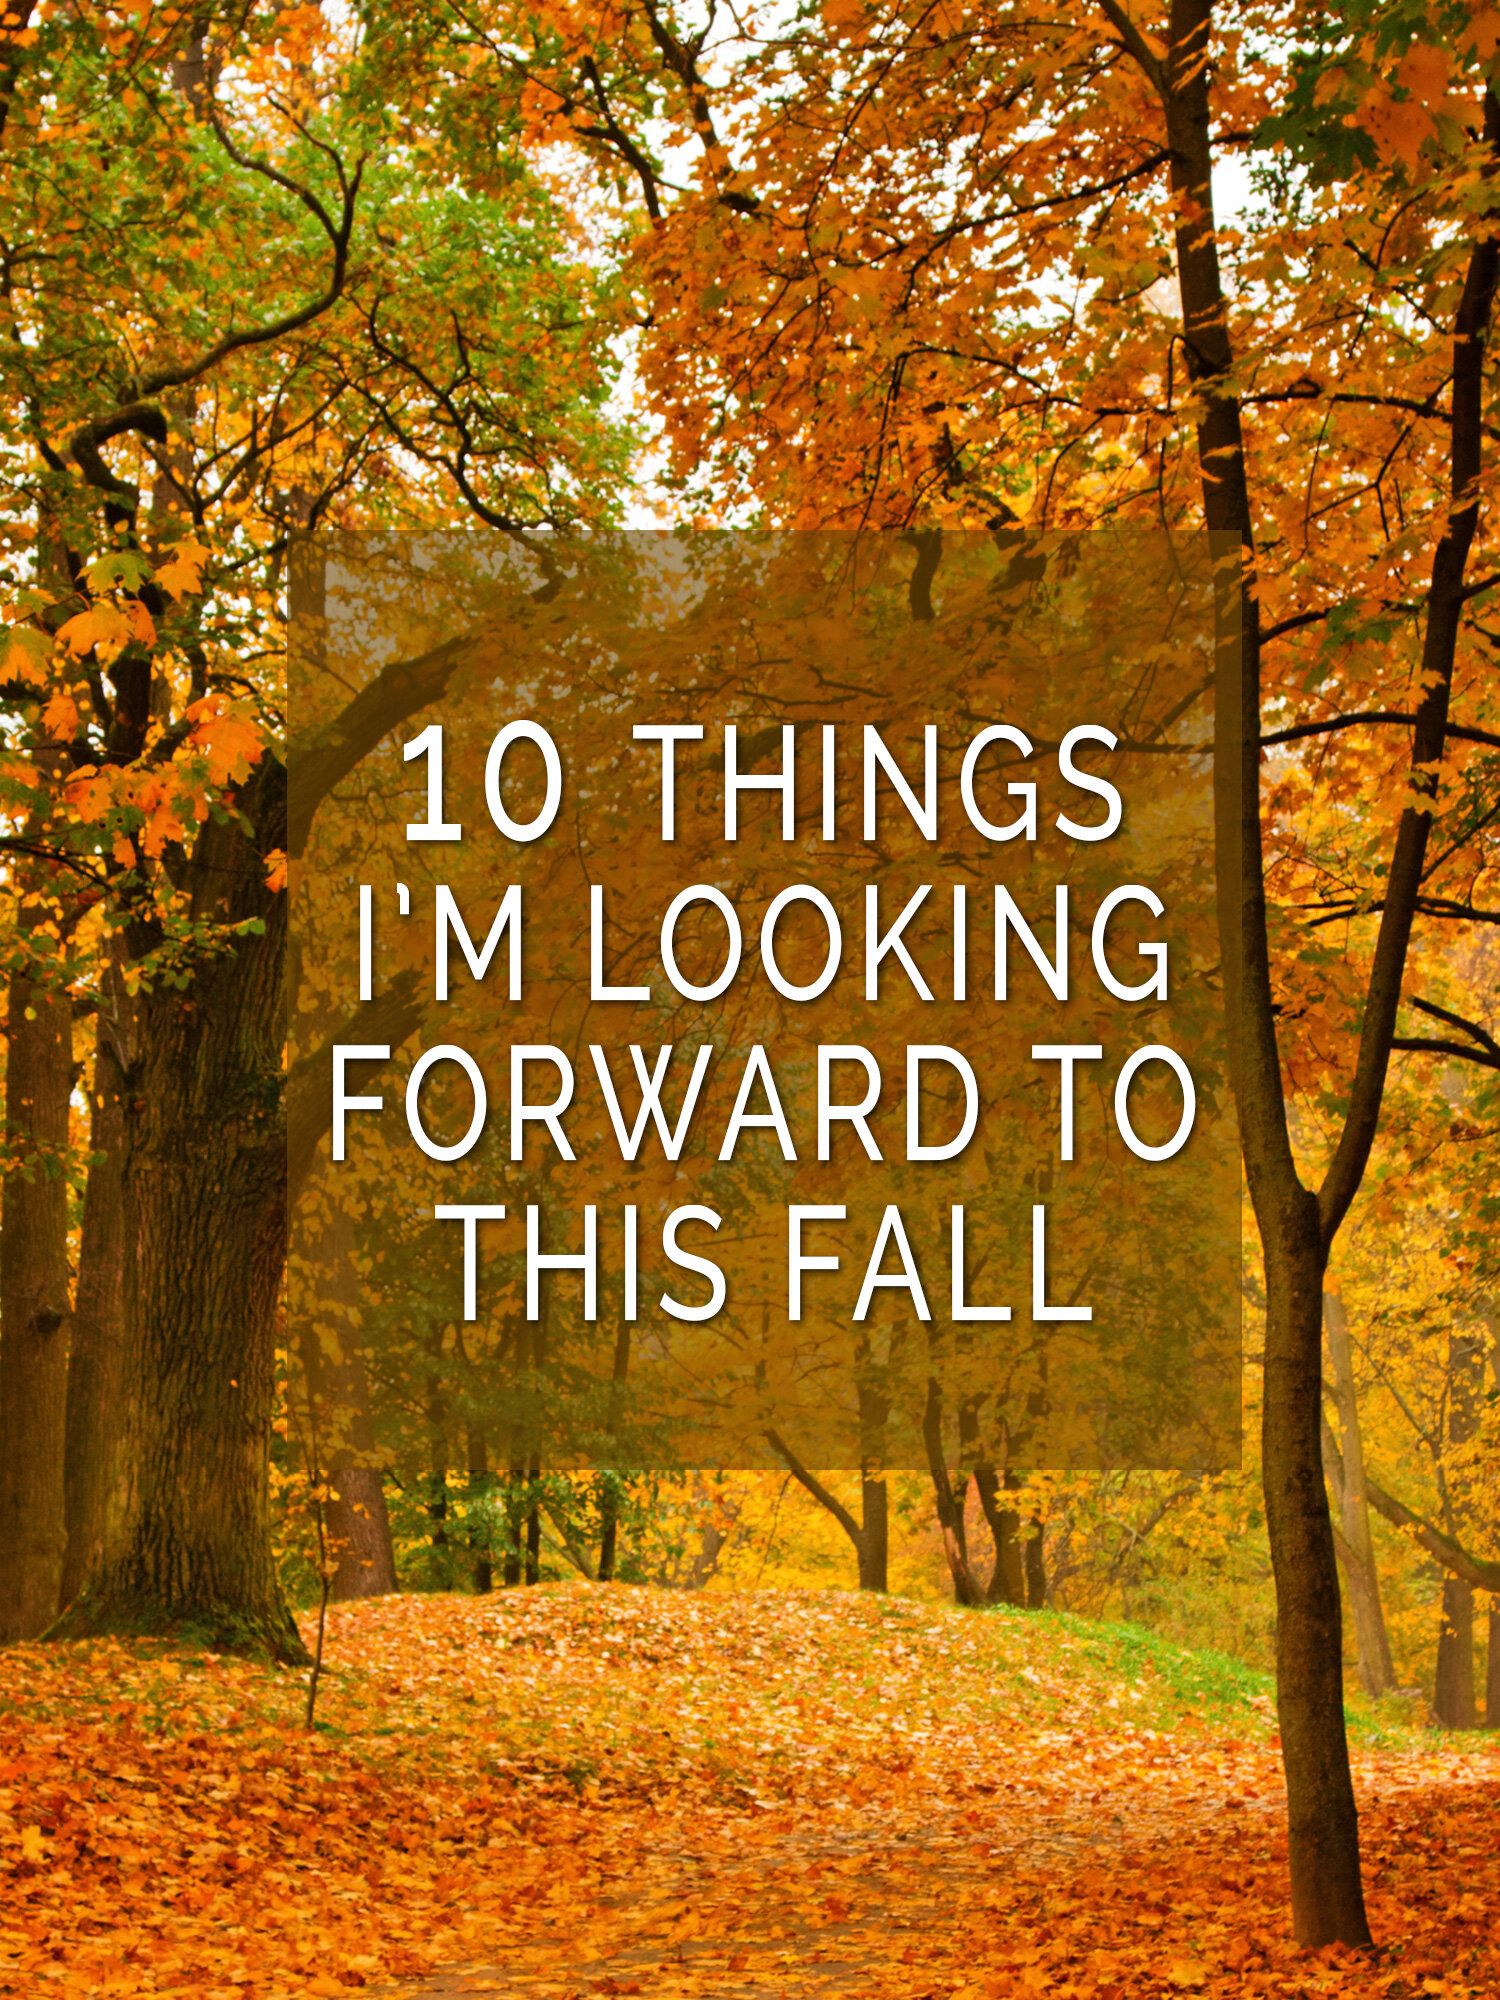 10 Things I'm Looking Forward to This Fall